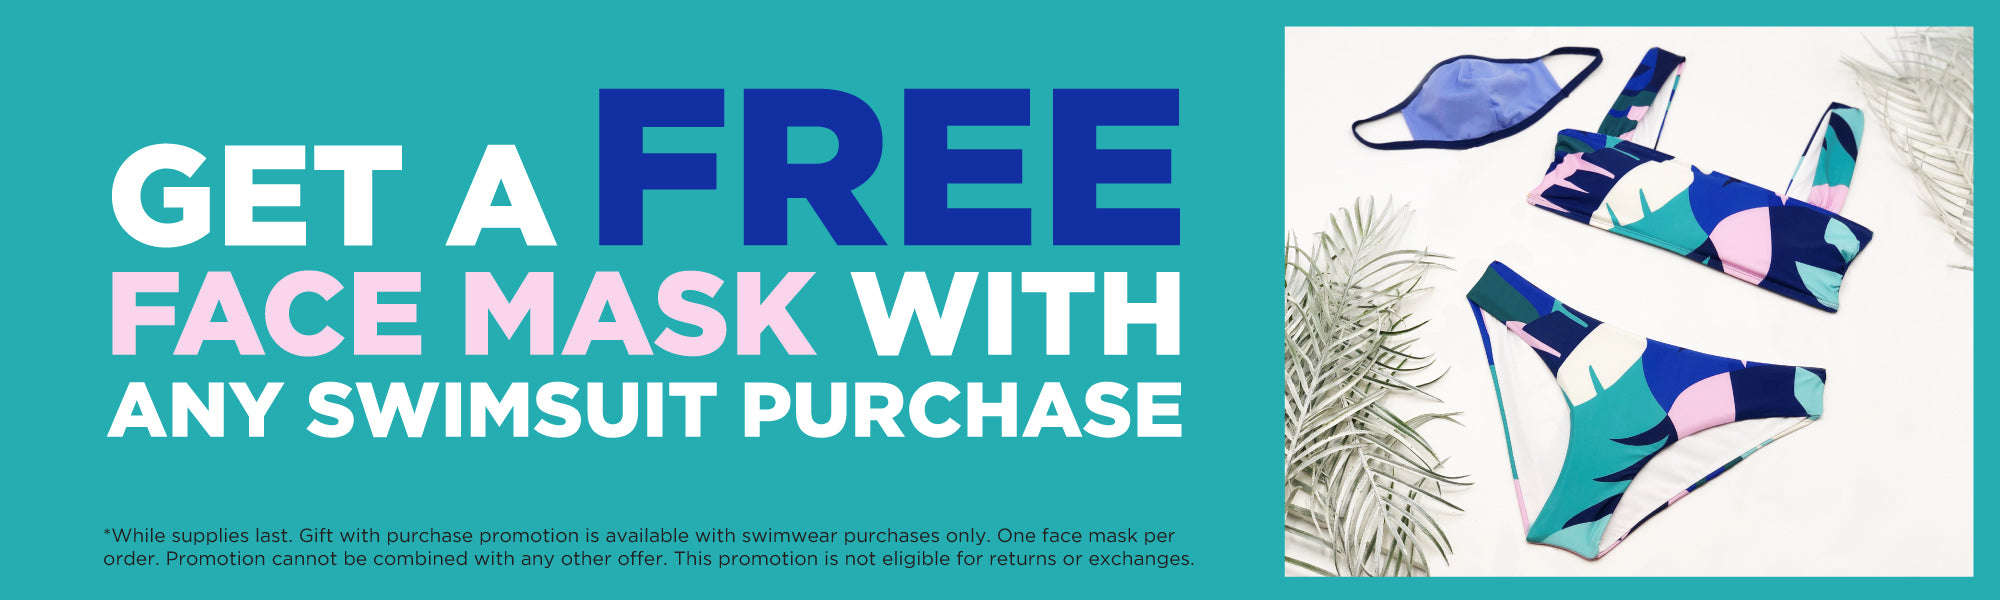 Free face mask with any swim purchase